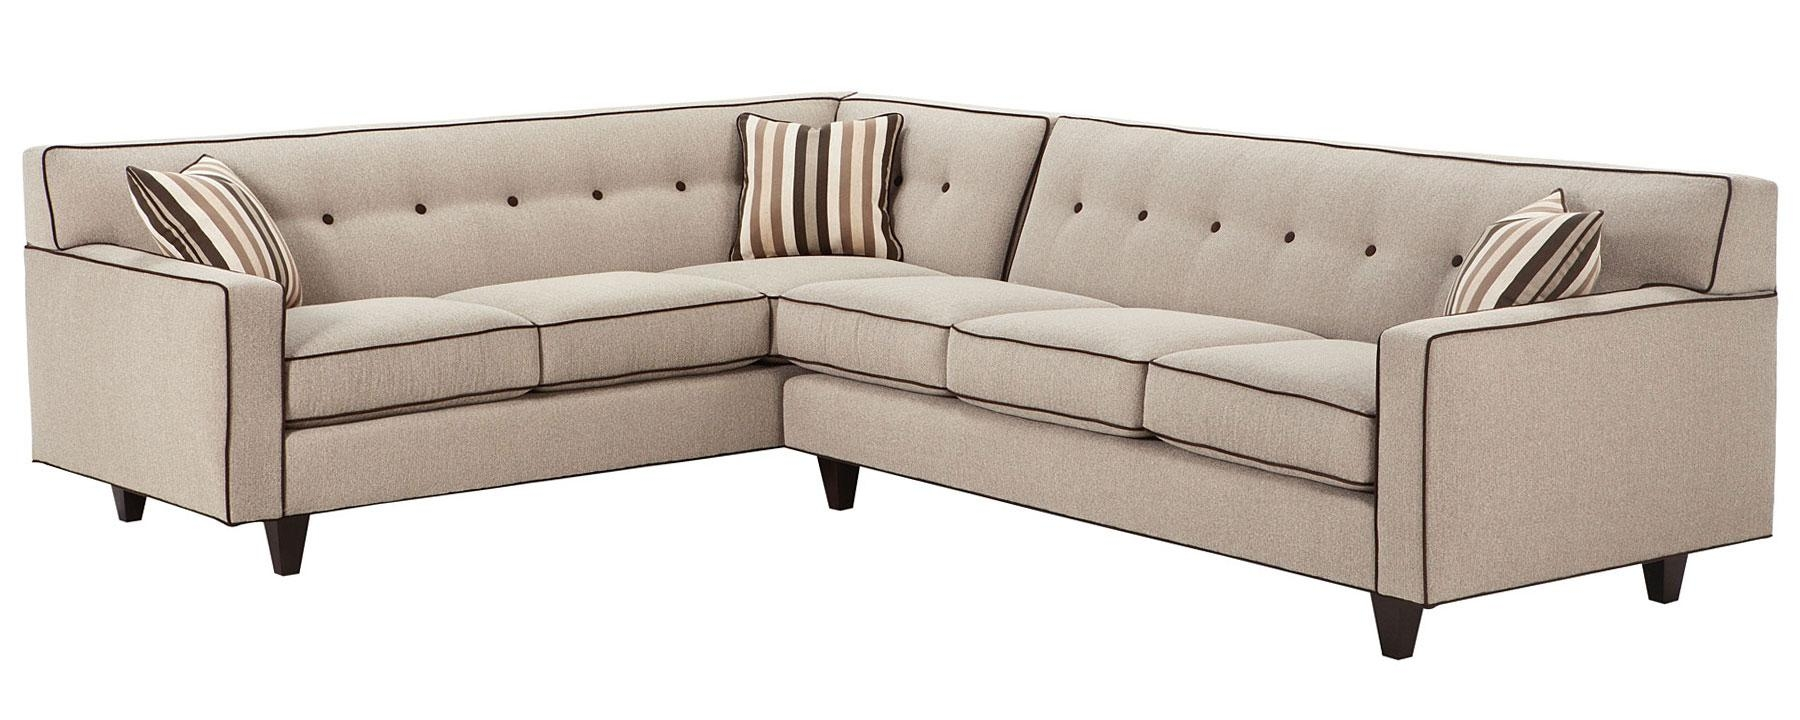 Mid Century Modern Sectional Sofa W/ Button Back | Club Furniture Intended For Mid Century Modern Sectional (View 10 of 20)